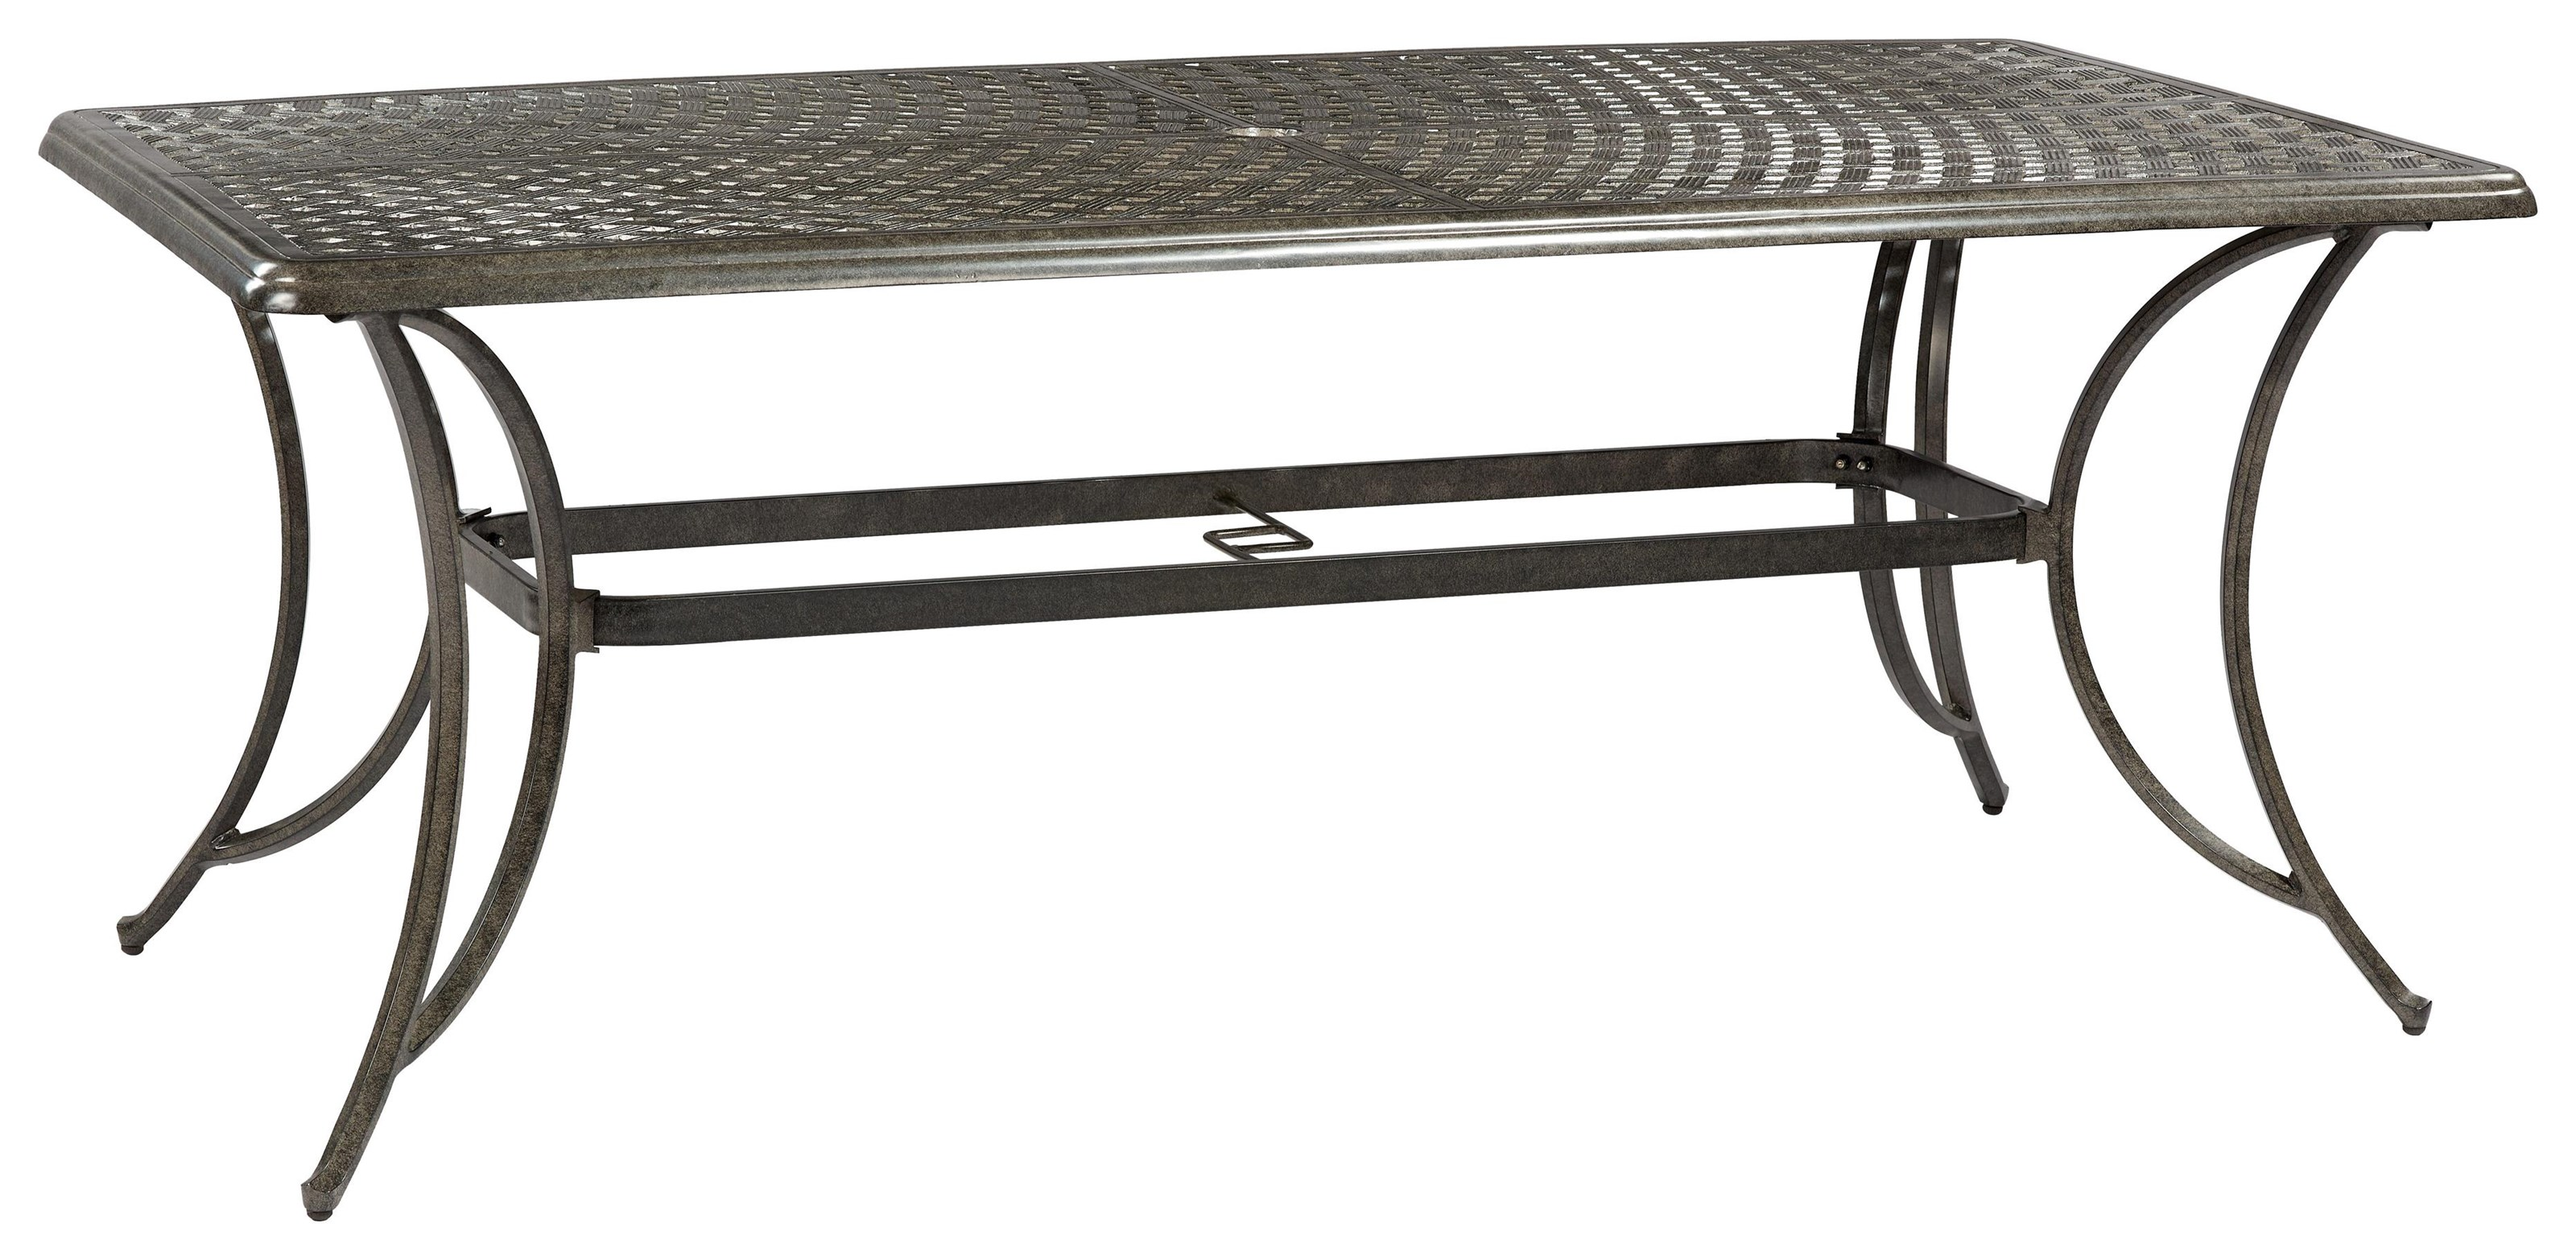 Madison RECTANGLE TABLE by Apricity Outdoor at Johnny Janosik